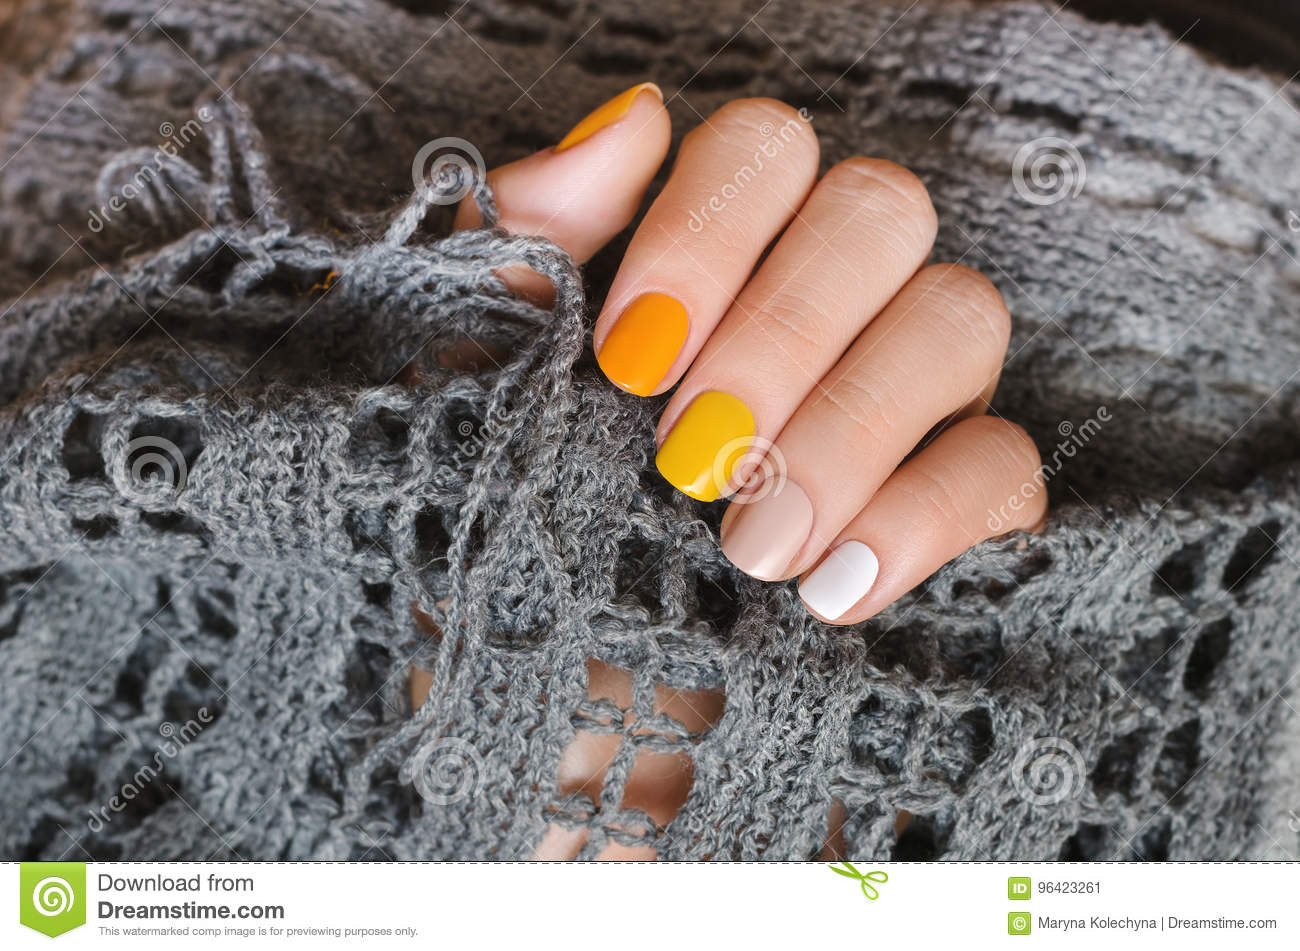 Yellow Nail Design Beautiful Female Hand With Manicure With Different Shades Of Yellow Stock Image Image Of Human Dots 96423261